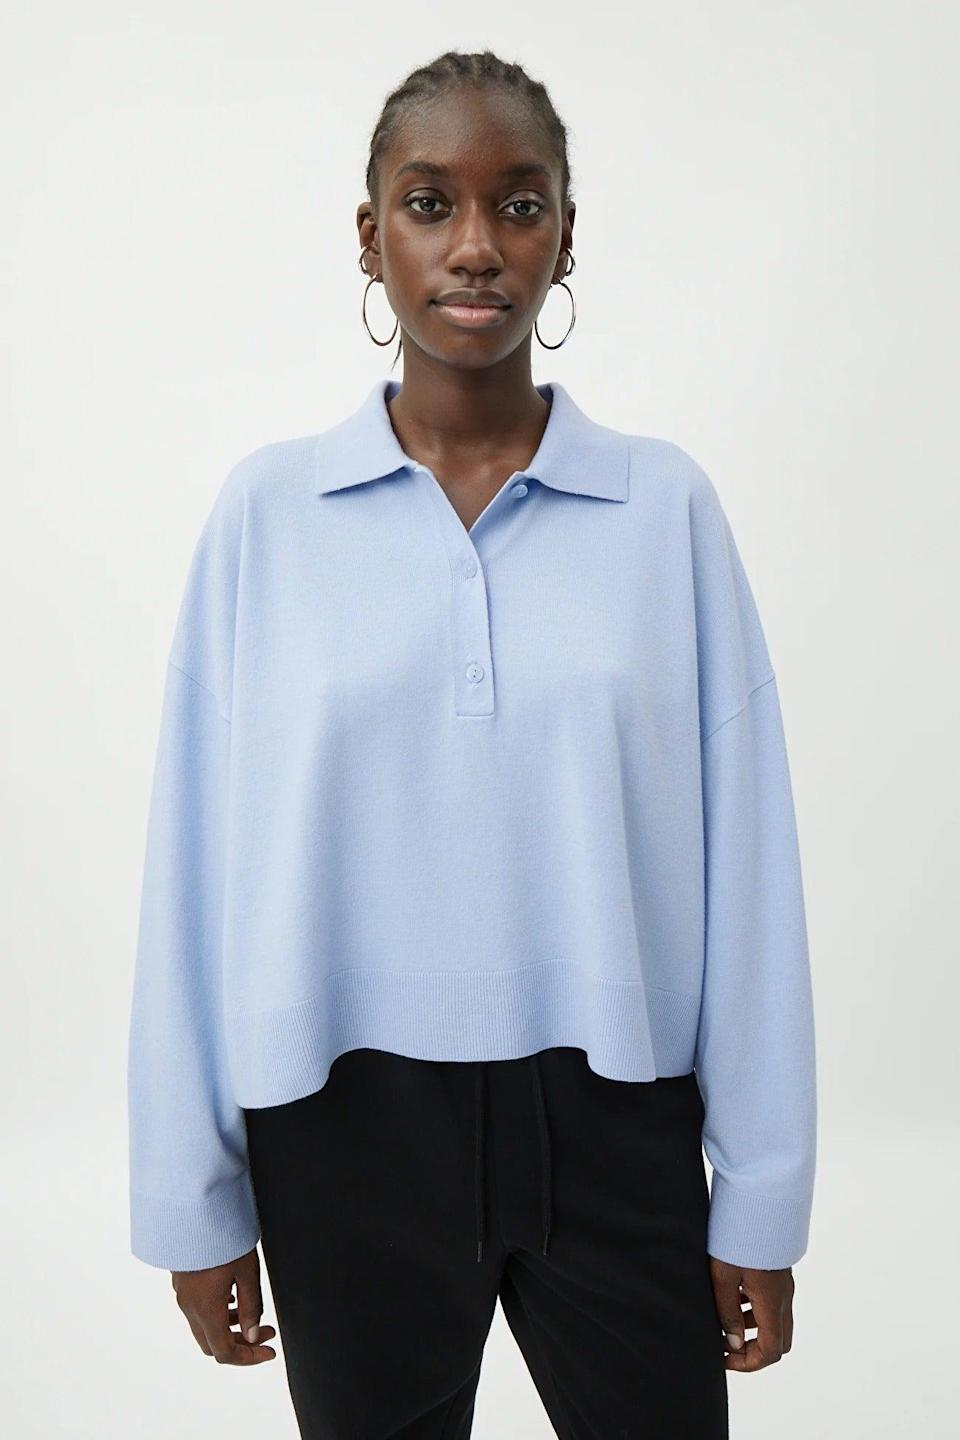 """<br><br><strong>Weekday</strong> Monique Sweater, $, available at <a href=""""https://www.weekday.com/en_gbp/women/hoodies-sweatshirts/product.monique-sweater-blue.0906082003.html"""" rel=""""nofollow noopener"""" target=""""_blank"""" data-ylk=""""slk:Weekday"""" class=""""link rapid-noclick-resp"""">Weekday</a>"""